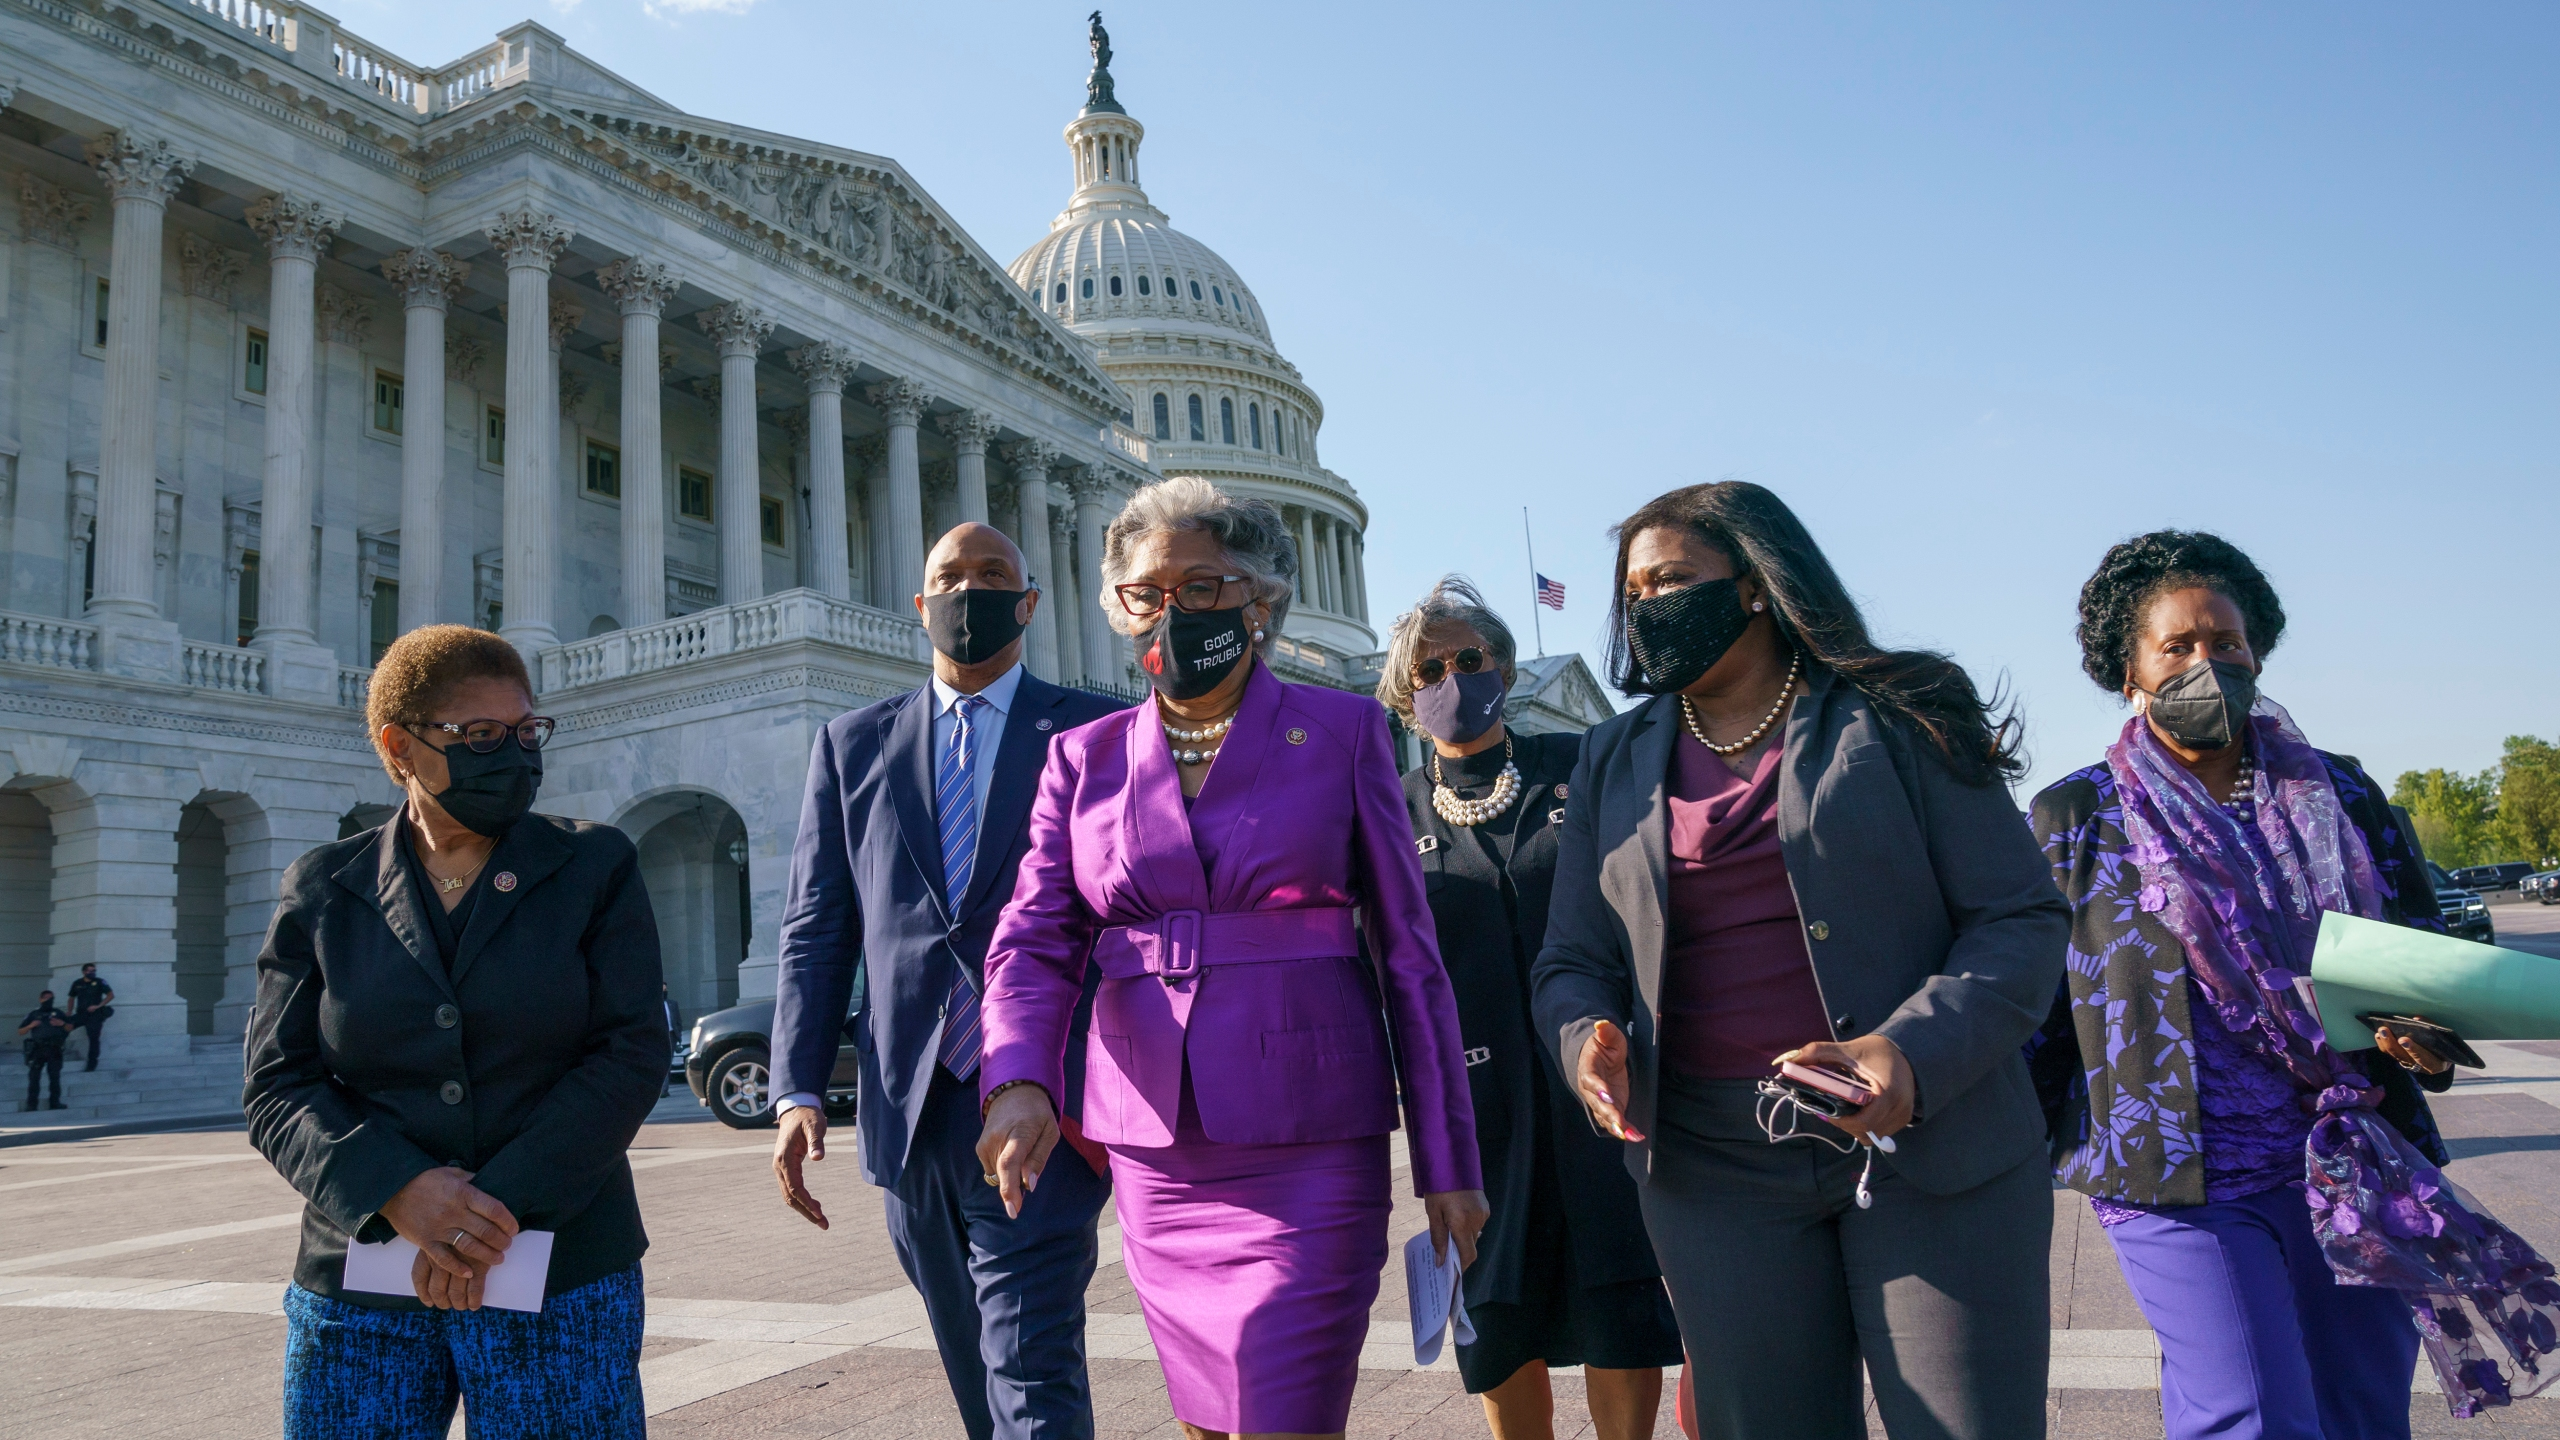 Karen Bass, Andre Carson, Joyce Beatty, Brenda Lawrence, Cori Bush, Sheila Jackson Lee